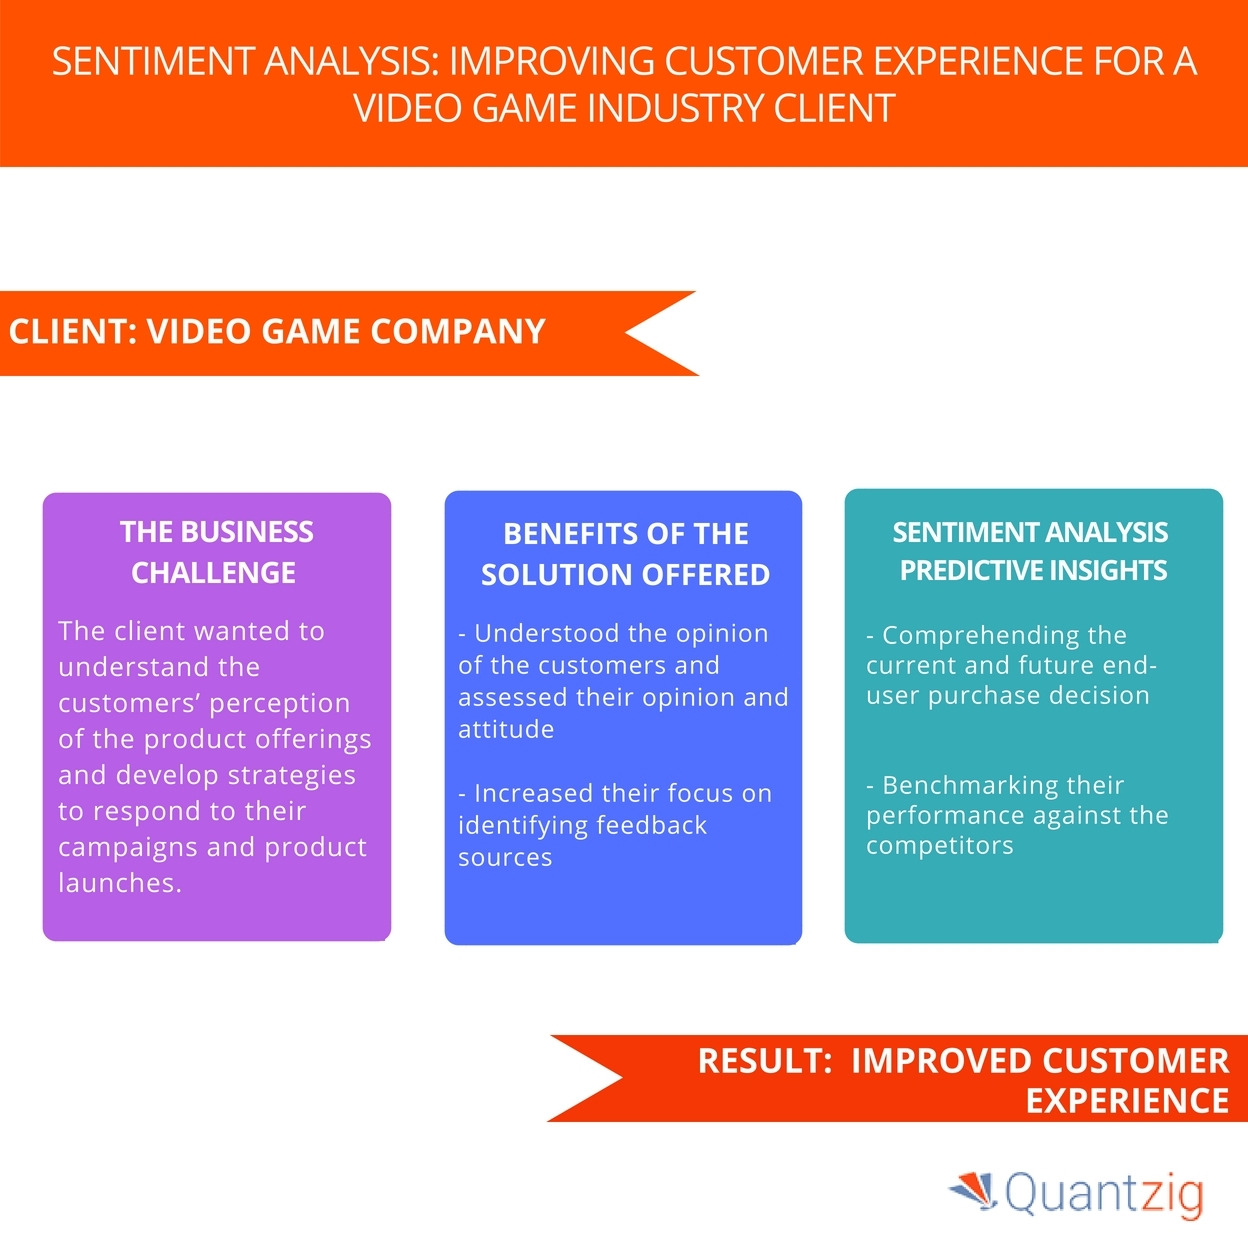 A Video Game Company Improved Customer Experience with